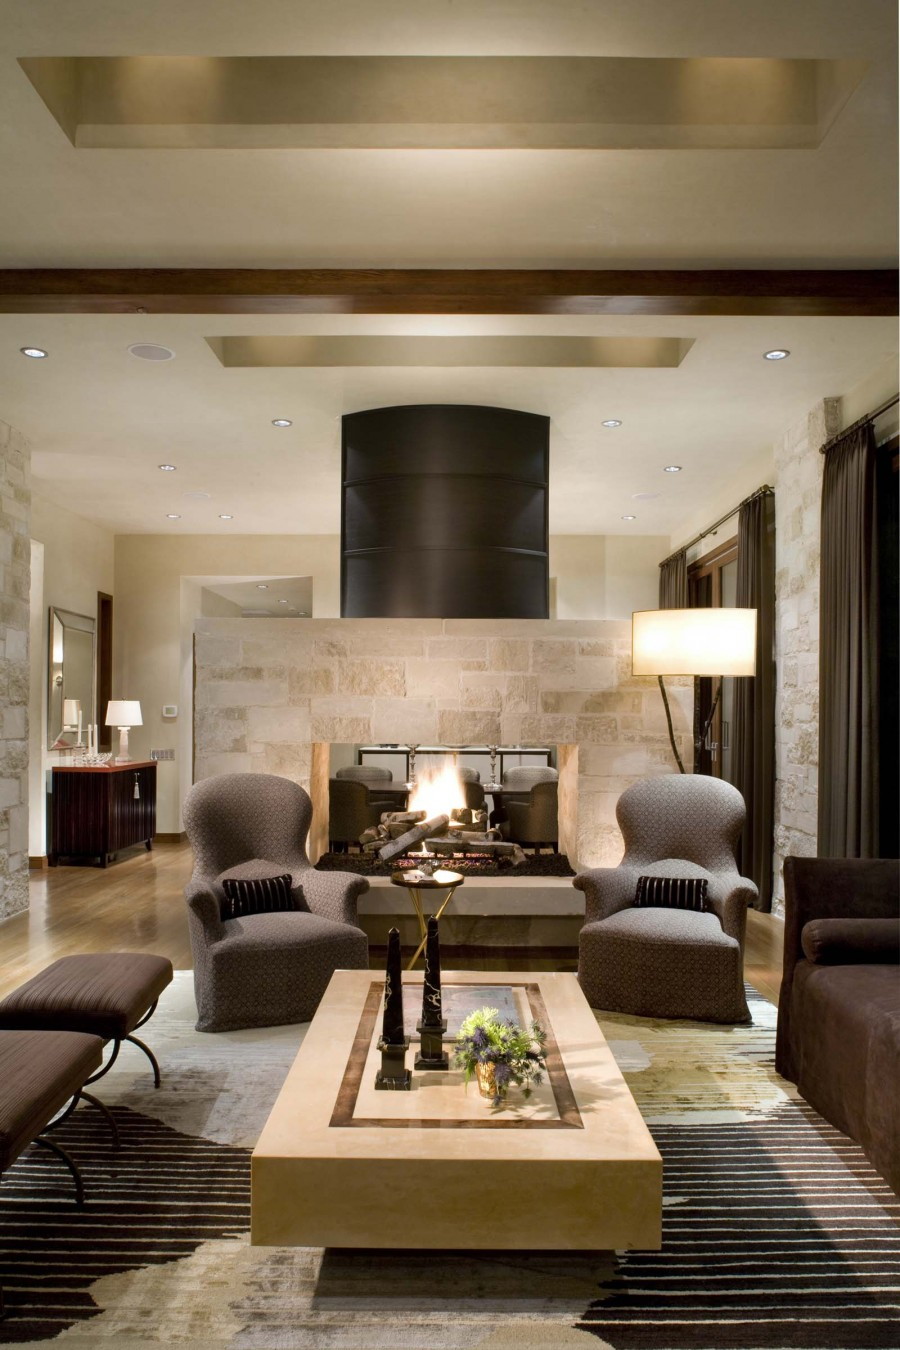 16 fabulous earth tones living room designs decoholic for Decoration living room ideas